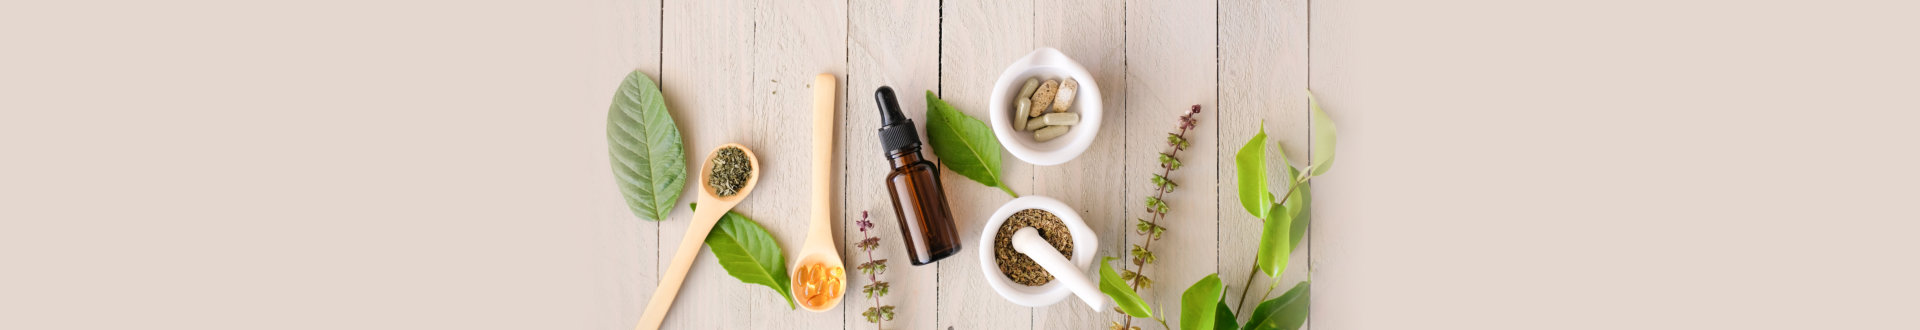 herbal organic medicine product. natural herb essential from nature